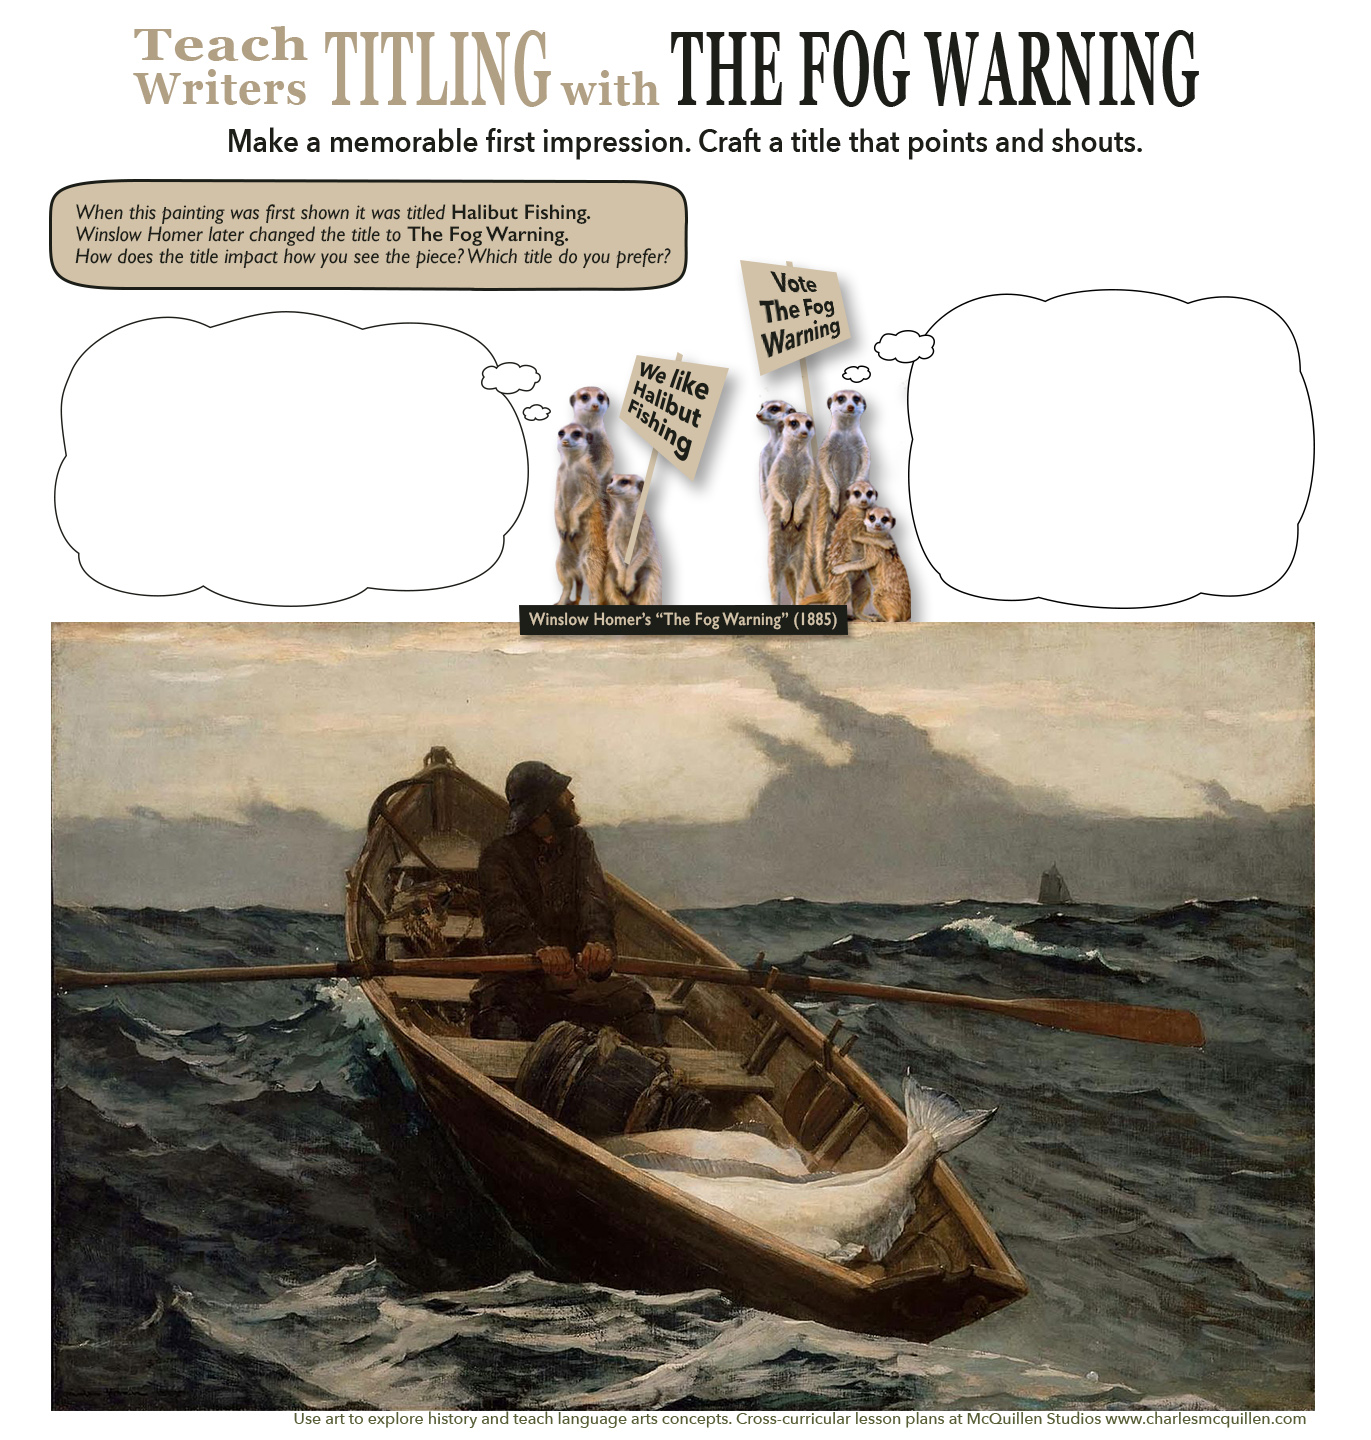 Teach writers the benefits of thoughtful titles with Winslow Homer's The Fog Warning